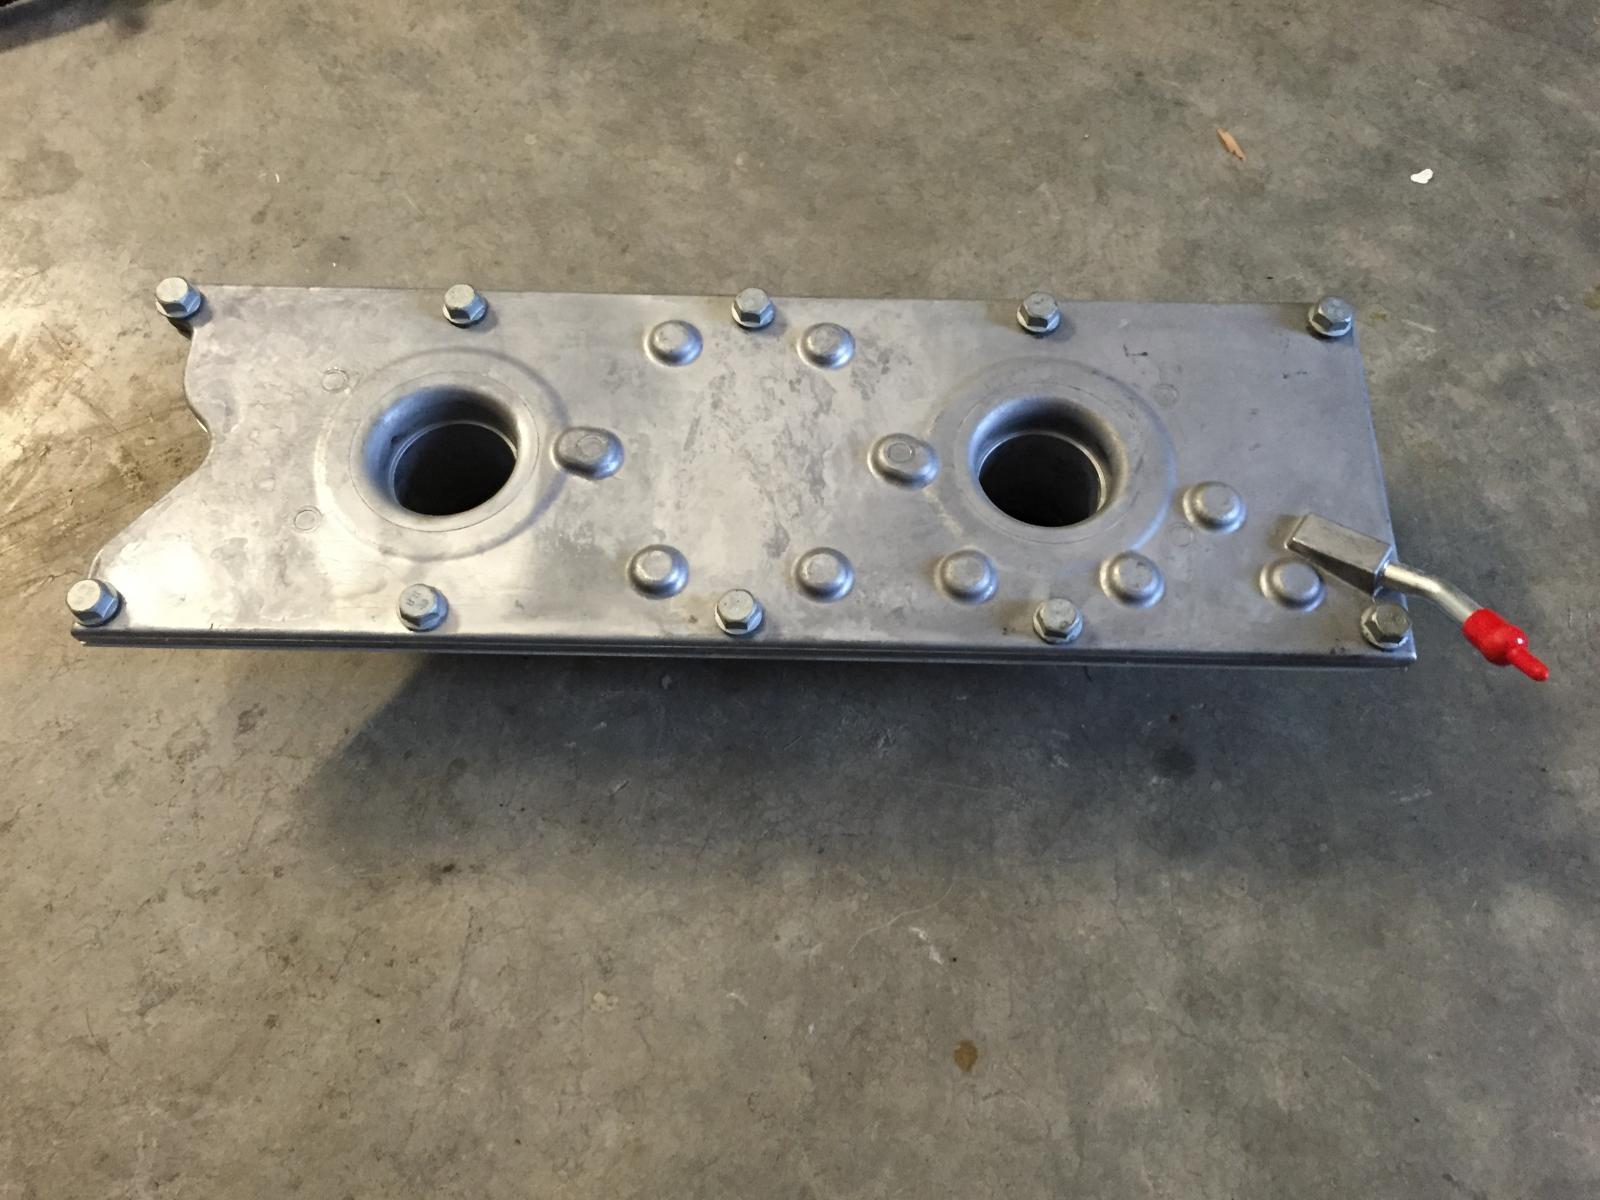 6010 / msd wires  brand new ls6 valley cover with integrated pcv - sold